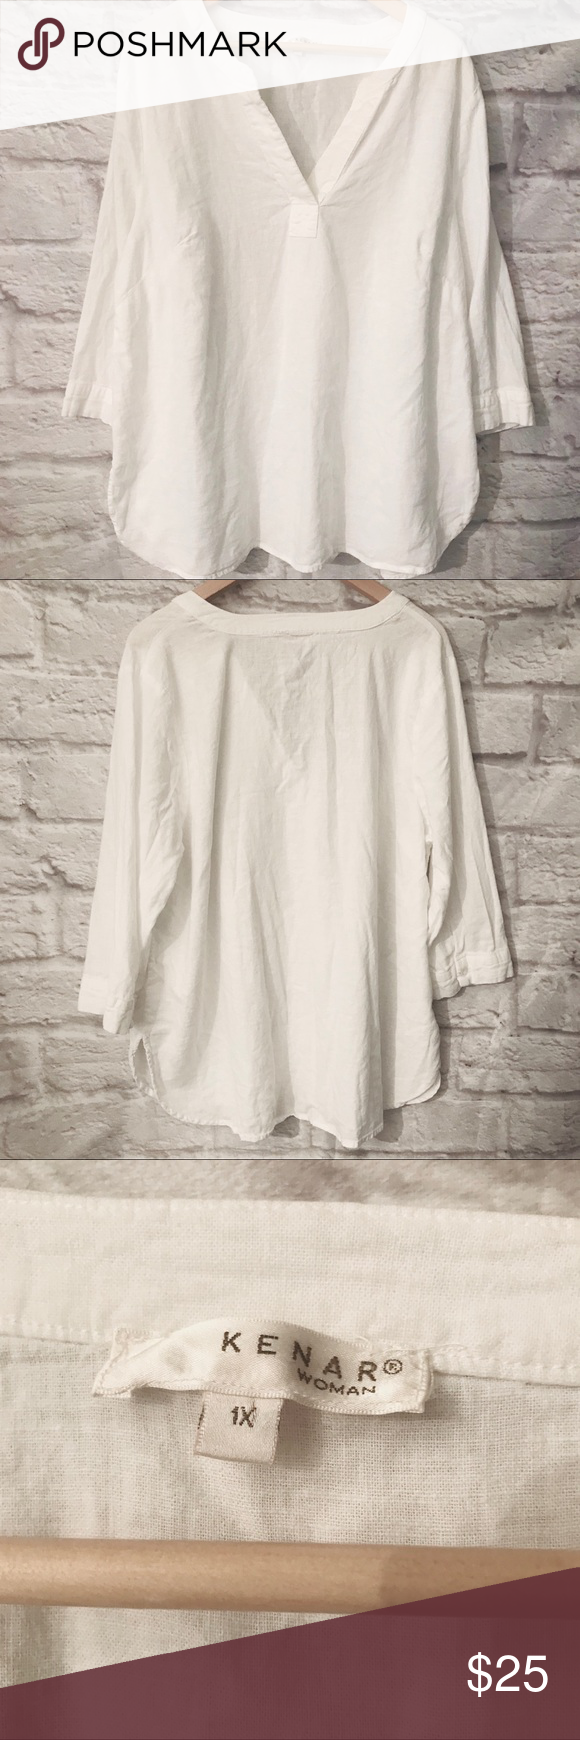 Kenar Line. blend White Shirt This Kenar shirt is a linen and rayon blend that is soft and has a Boho casual style.  Pair with skinny jeans, leggings and ankle boots or sandals or dress up with a statement necklace and palazzo pants or a pencil skirt and heels.  This is in great shape.  Note the close up photo of a thread that is darker. Kenar Tops #skinnyjeansandankleboots Kenar Line. blend White Shirt This Kenar shirt is a linen and rayon blend that is soft and has a Boho casual style.  Pair w #skinnyjeansandankleboots